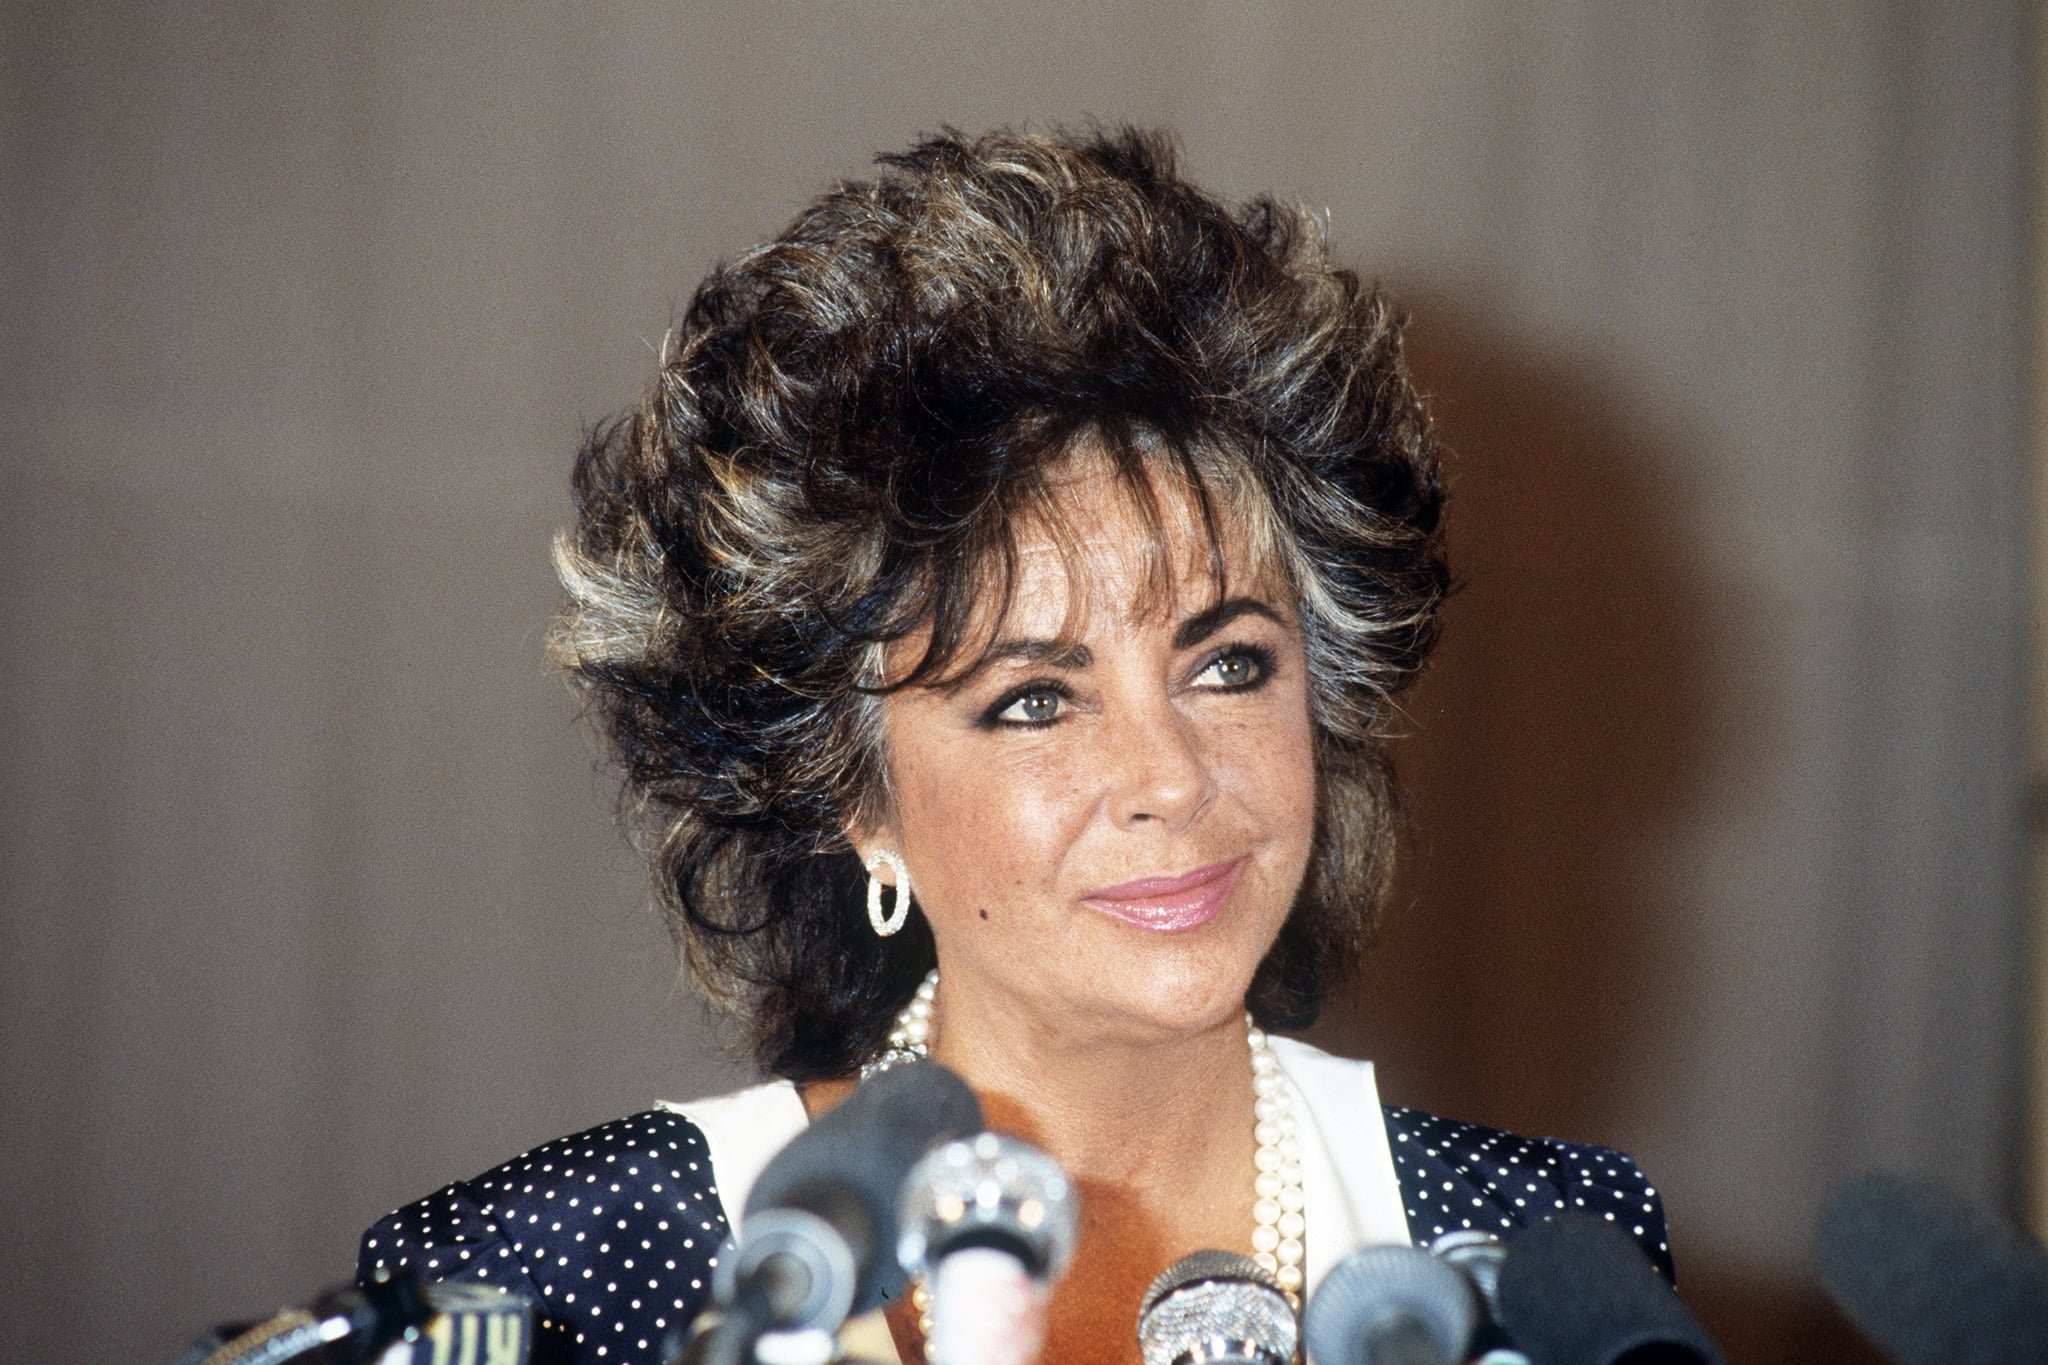 US actress Elizabeth Taylor attends a gala at the Paradis Latin organised for the fight against AIDS, on November 11, 1985, in Paris. (Photo credit should read PIERRE GUILLAUD/AFP/Getty Images)